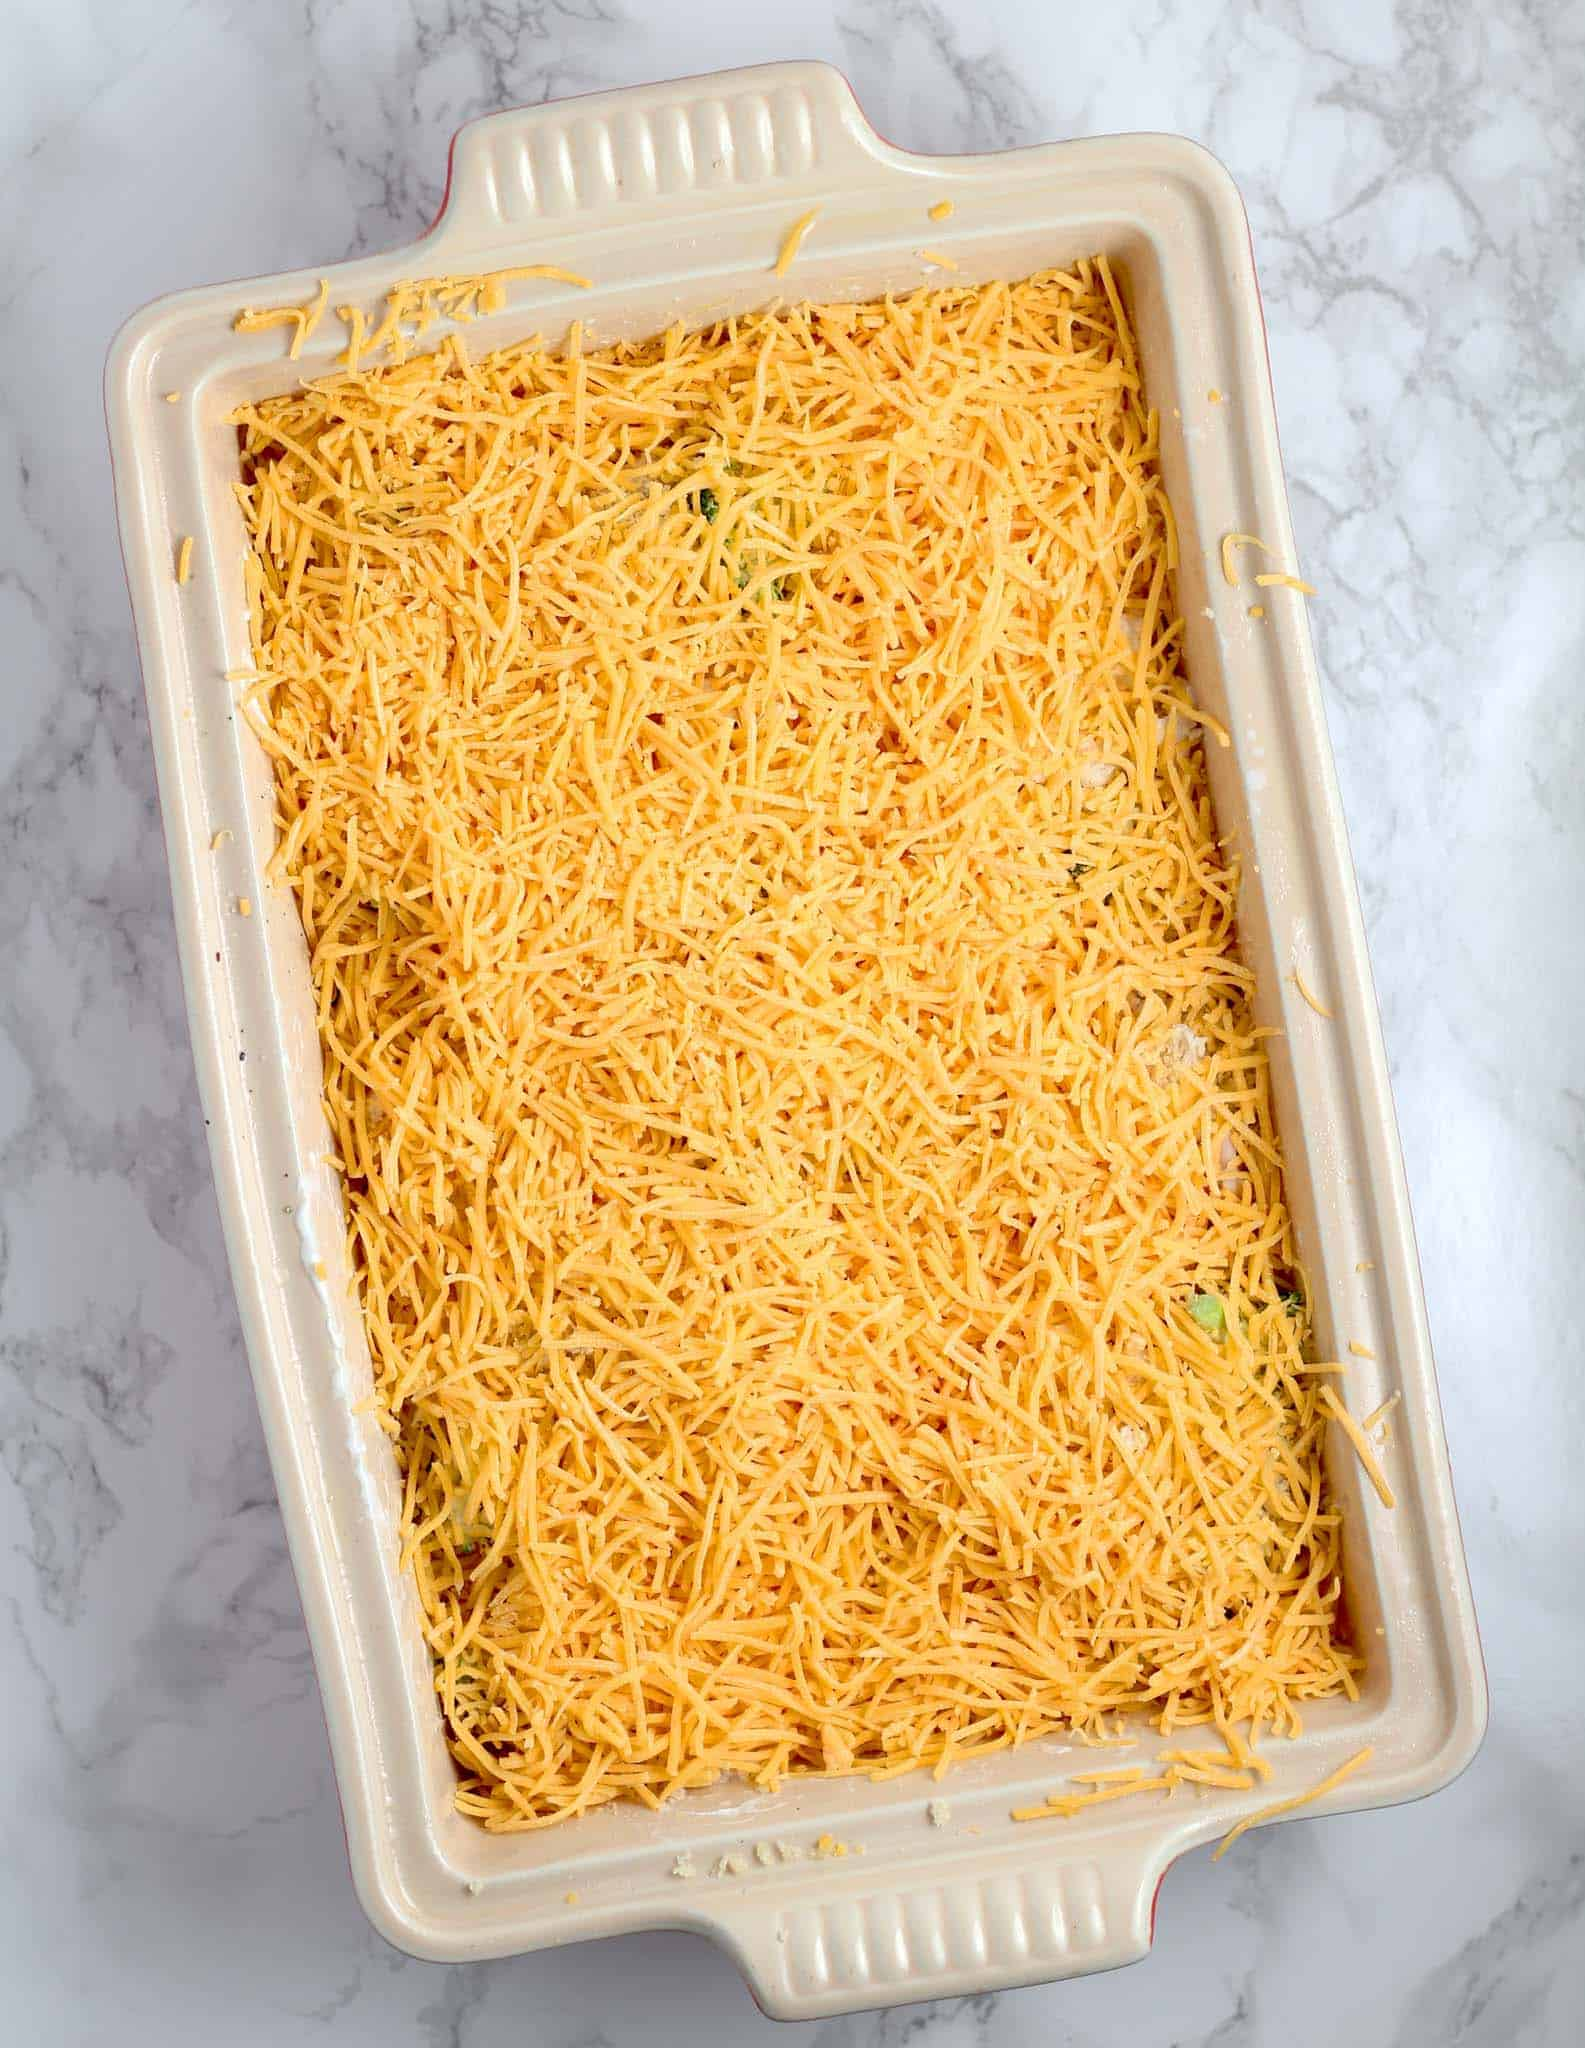 adding cheese to this low carb chicken casserole recipe